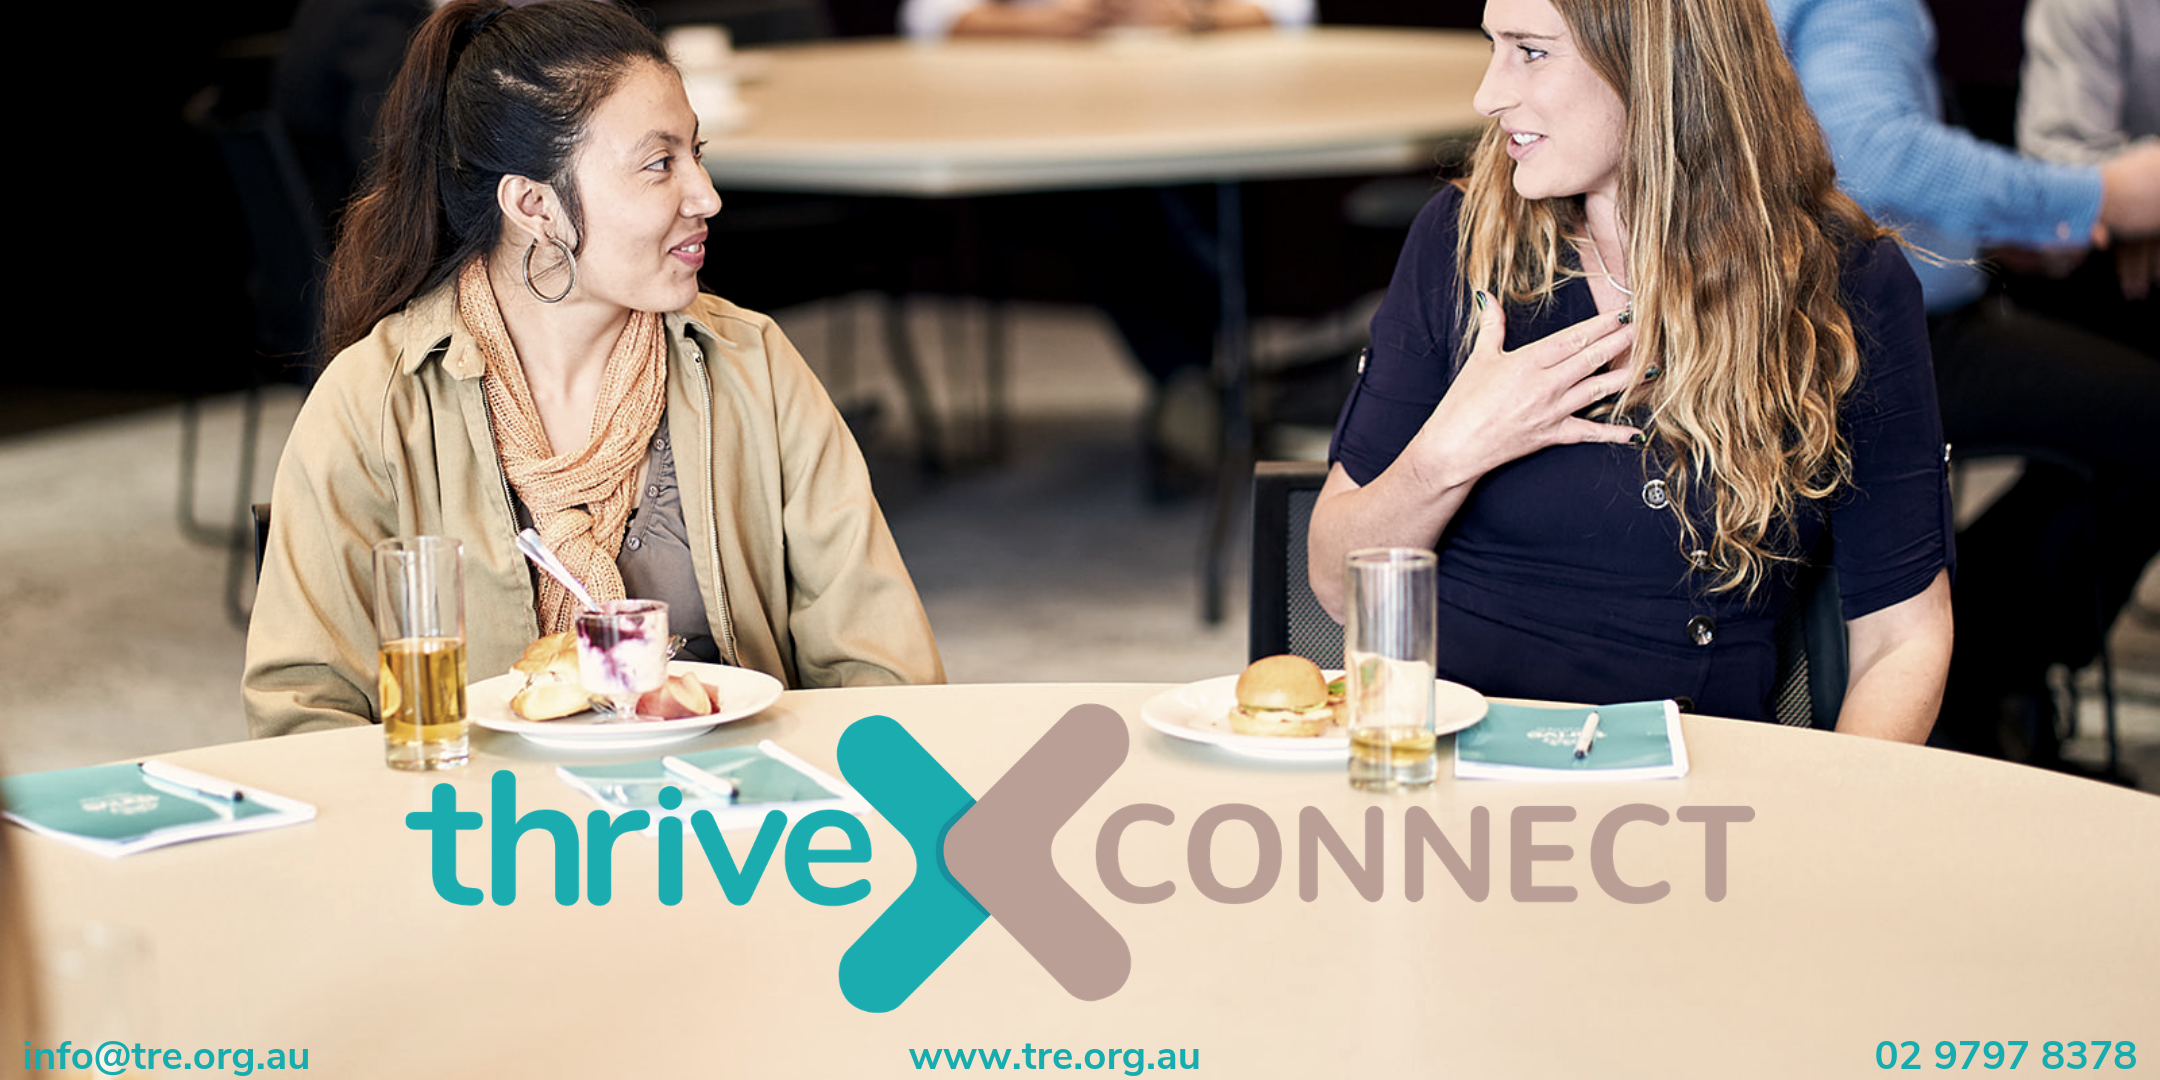 Thrive Connect: Website Building for a Small Business